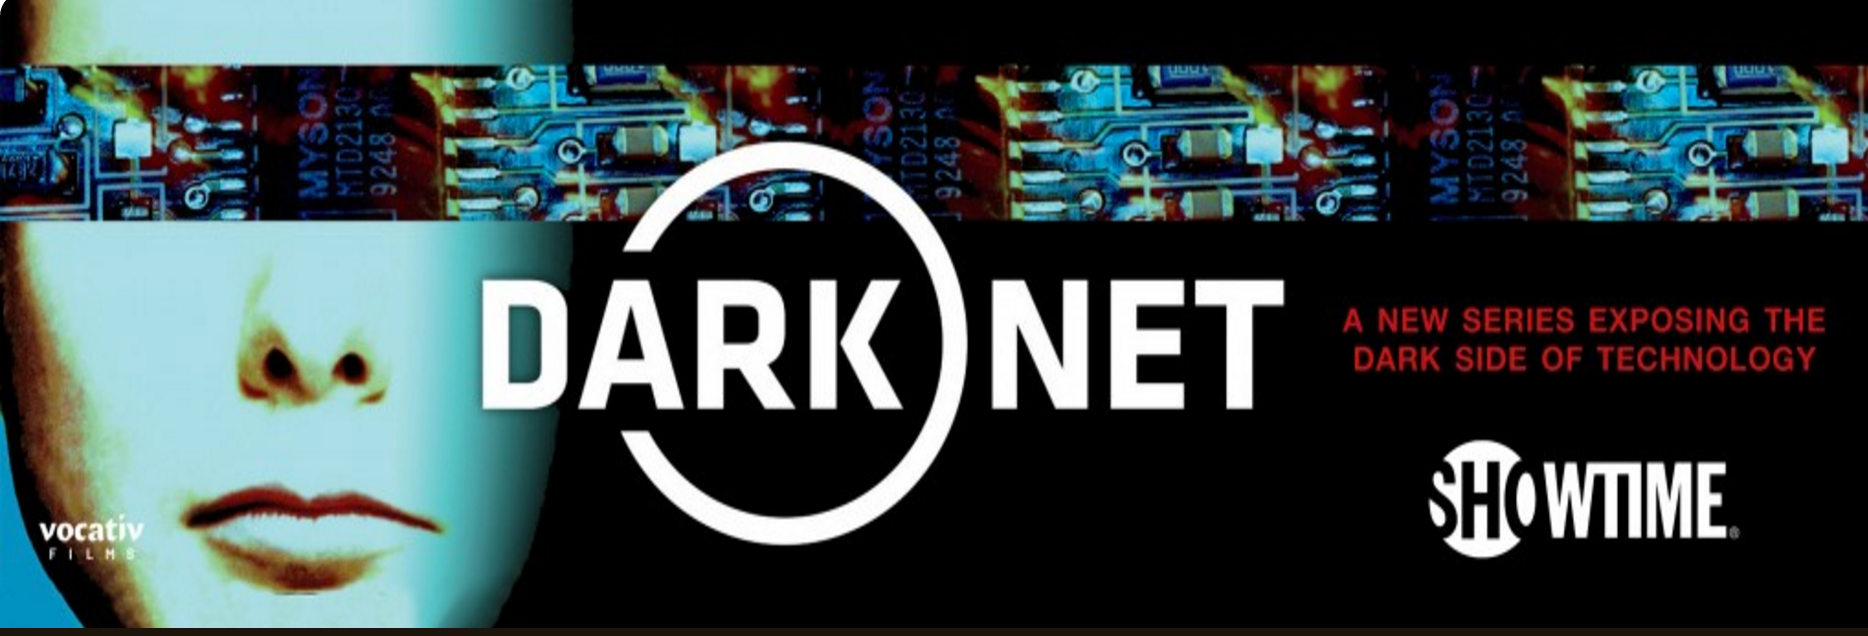 darknet the series